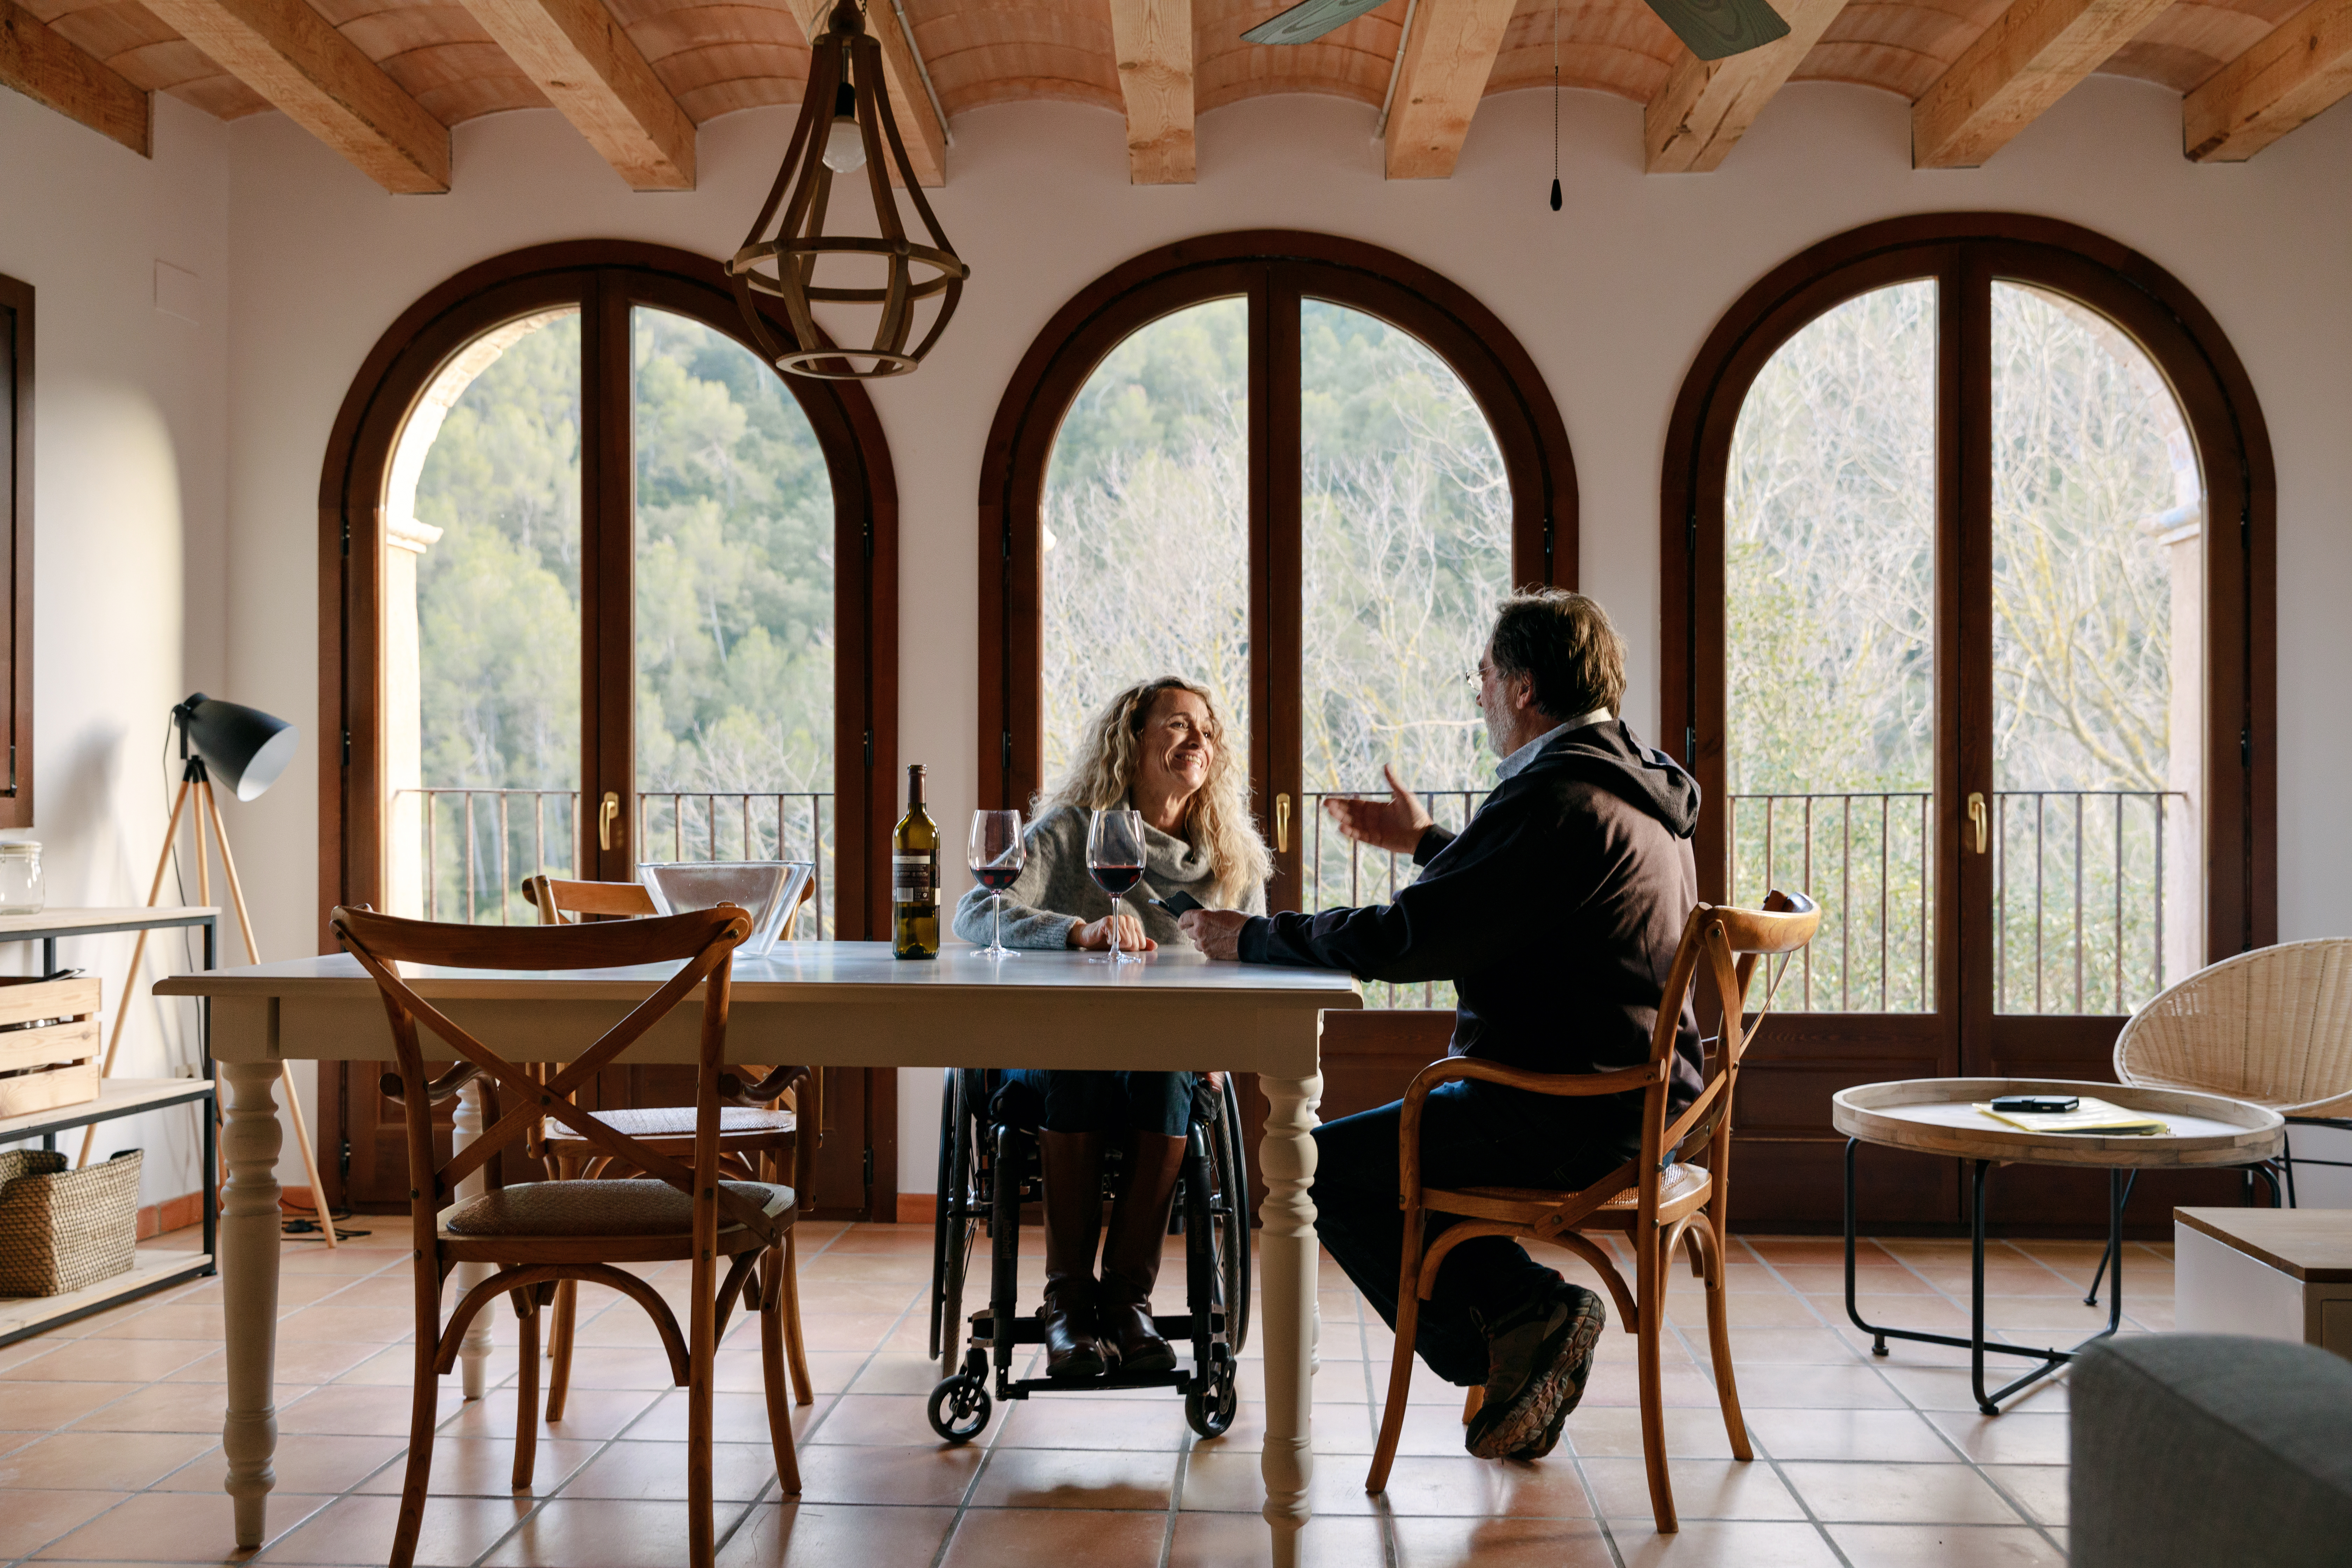 A pair, including a wheelchair user, sat at a kitchen table in Spain